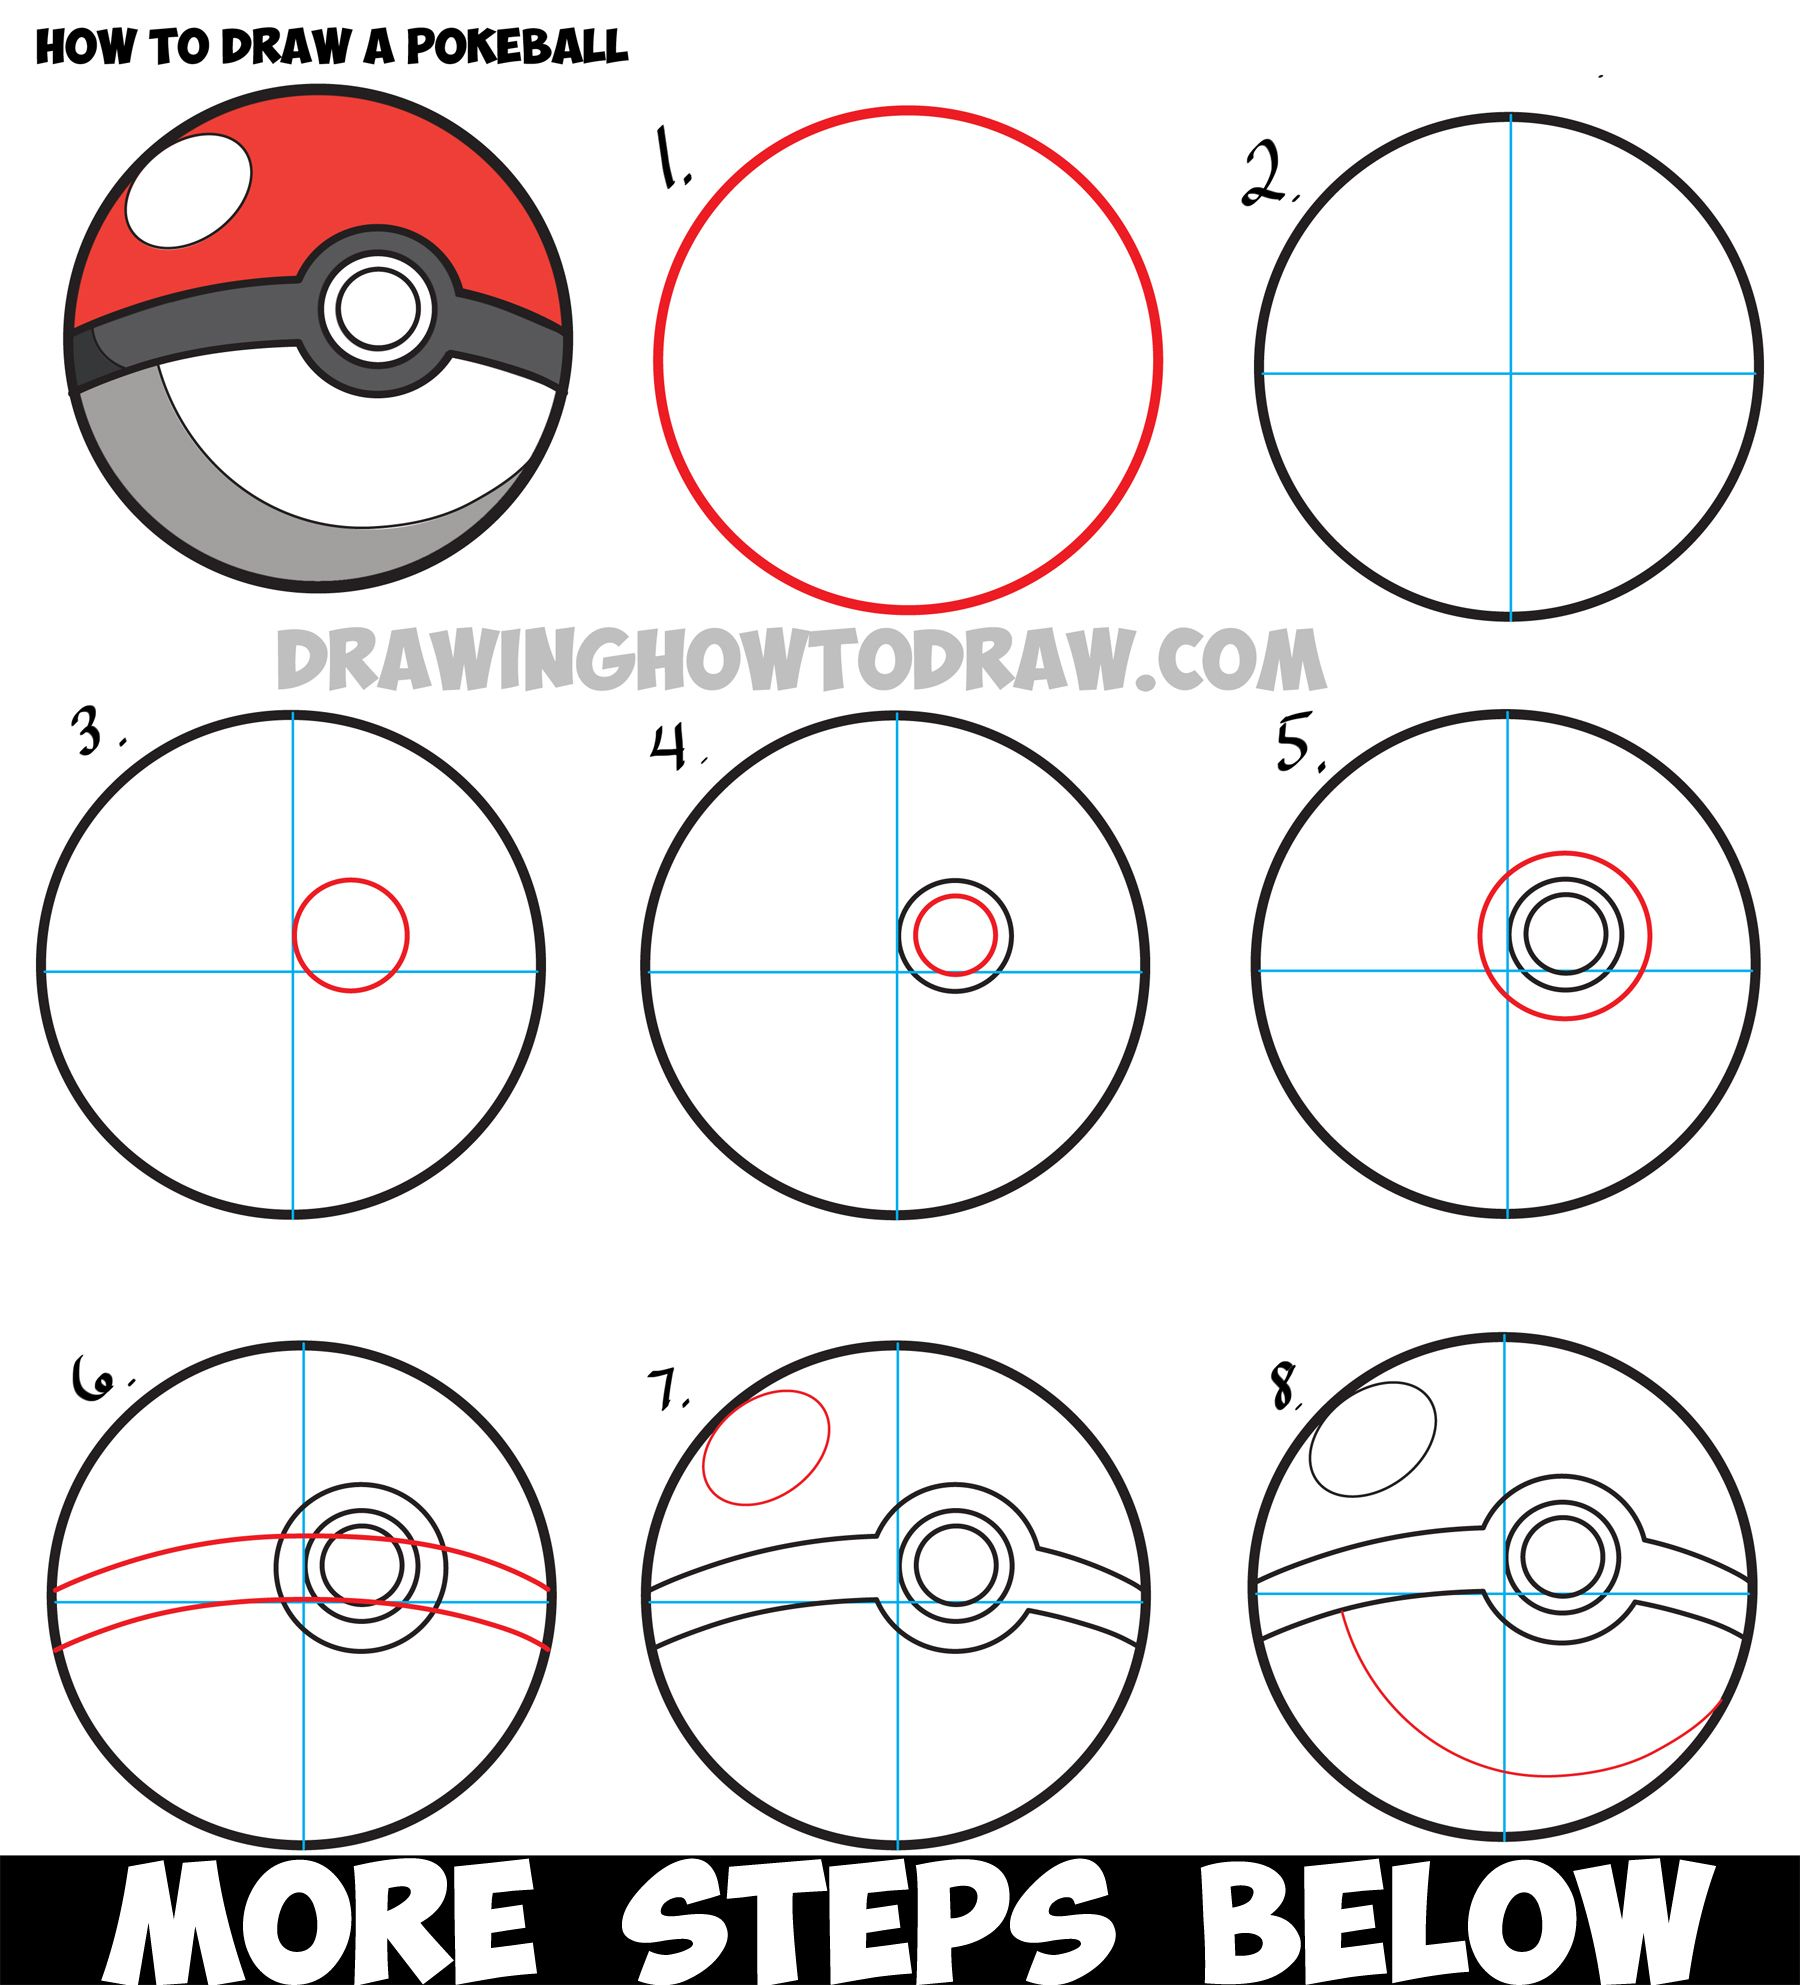 How To Draw A Pokeball From Pokemon Easy Step By Step Drawing Tutorial How To Draw Step By Step Drawing Tutorials Step By Step Drawing Drawing Tutorial Cute Easy Drawings